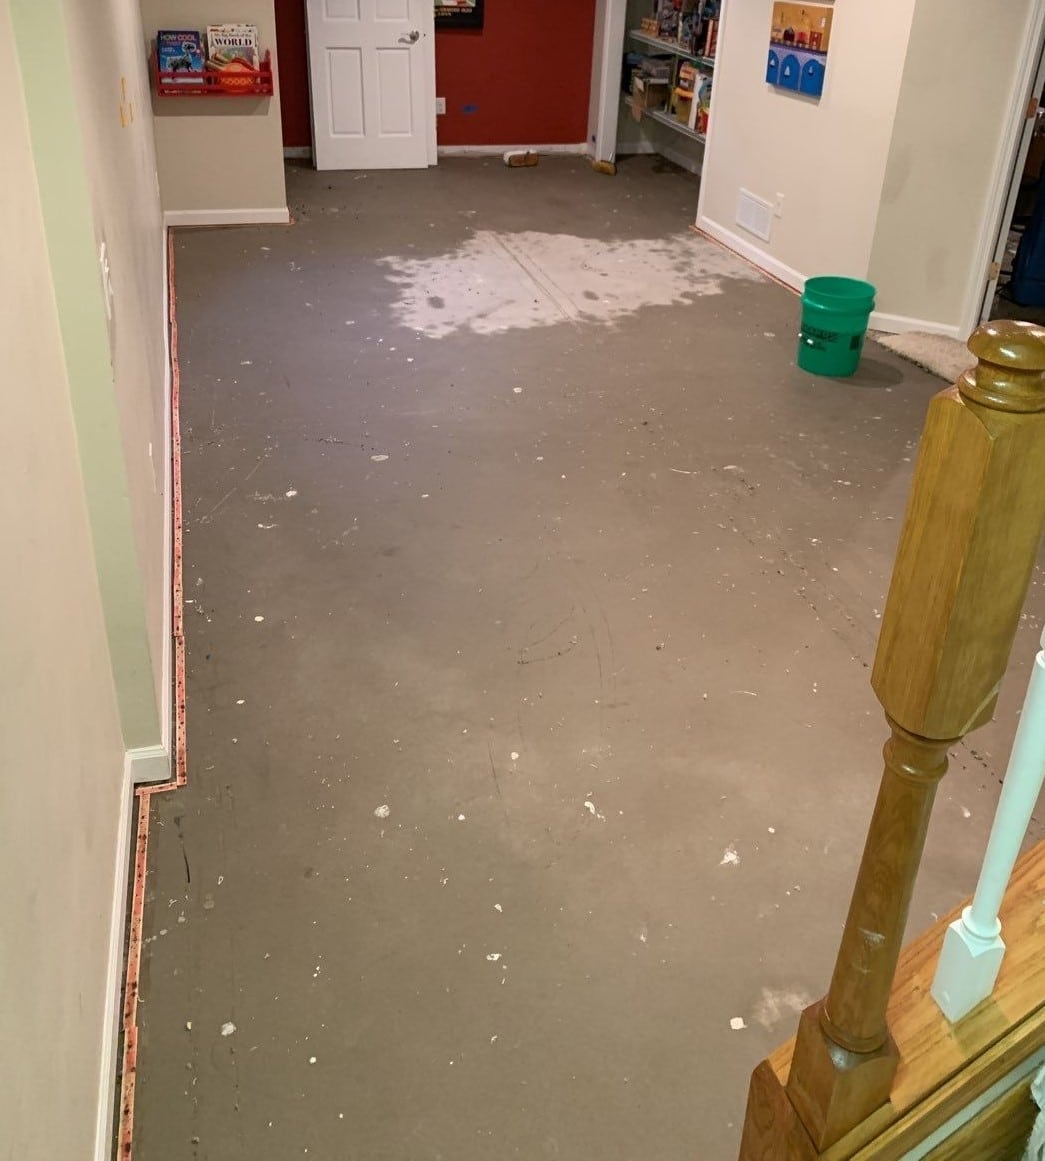 Main room after carpet removed